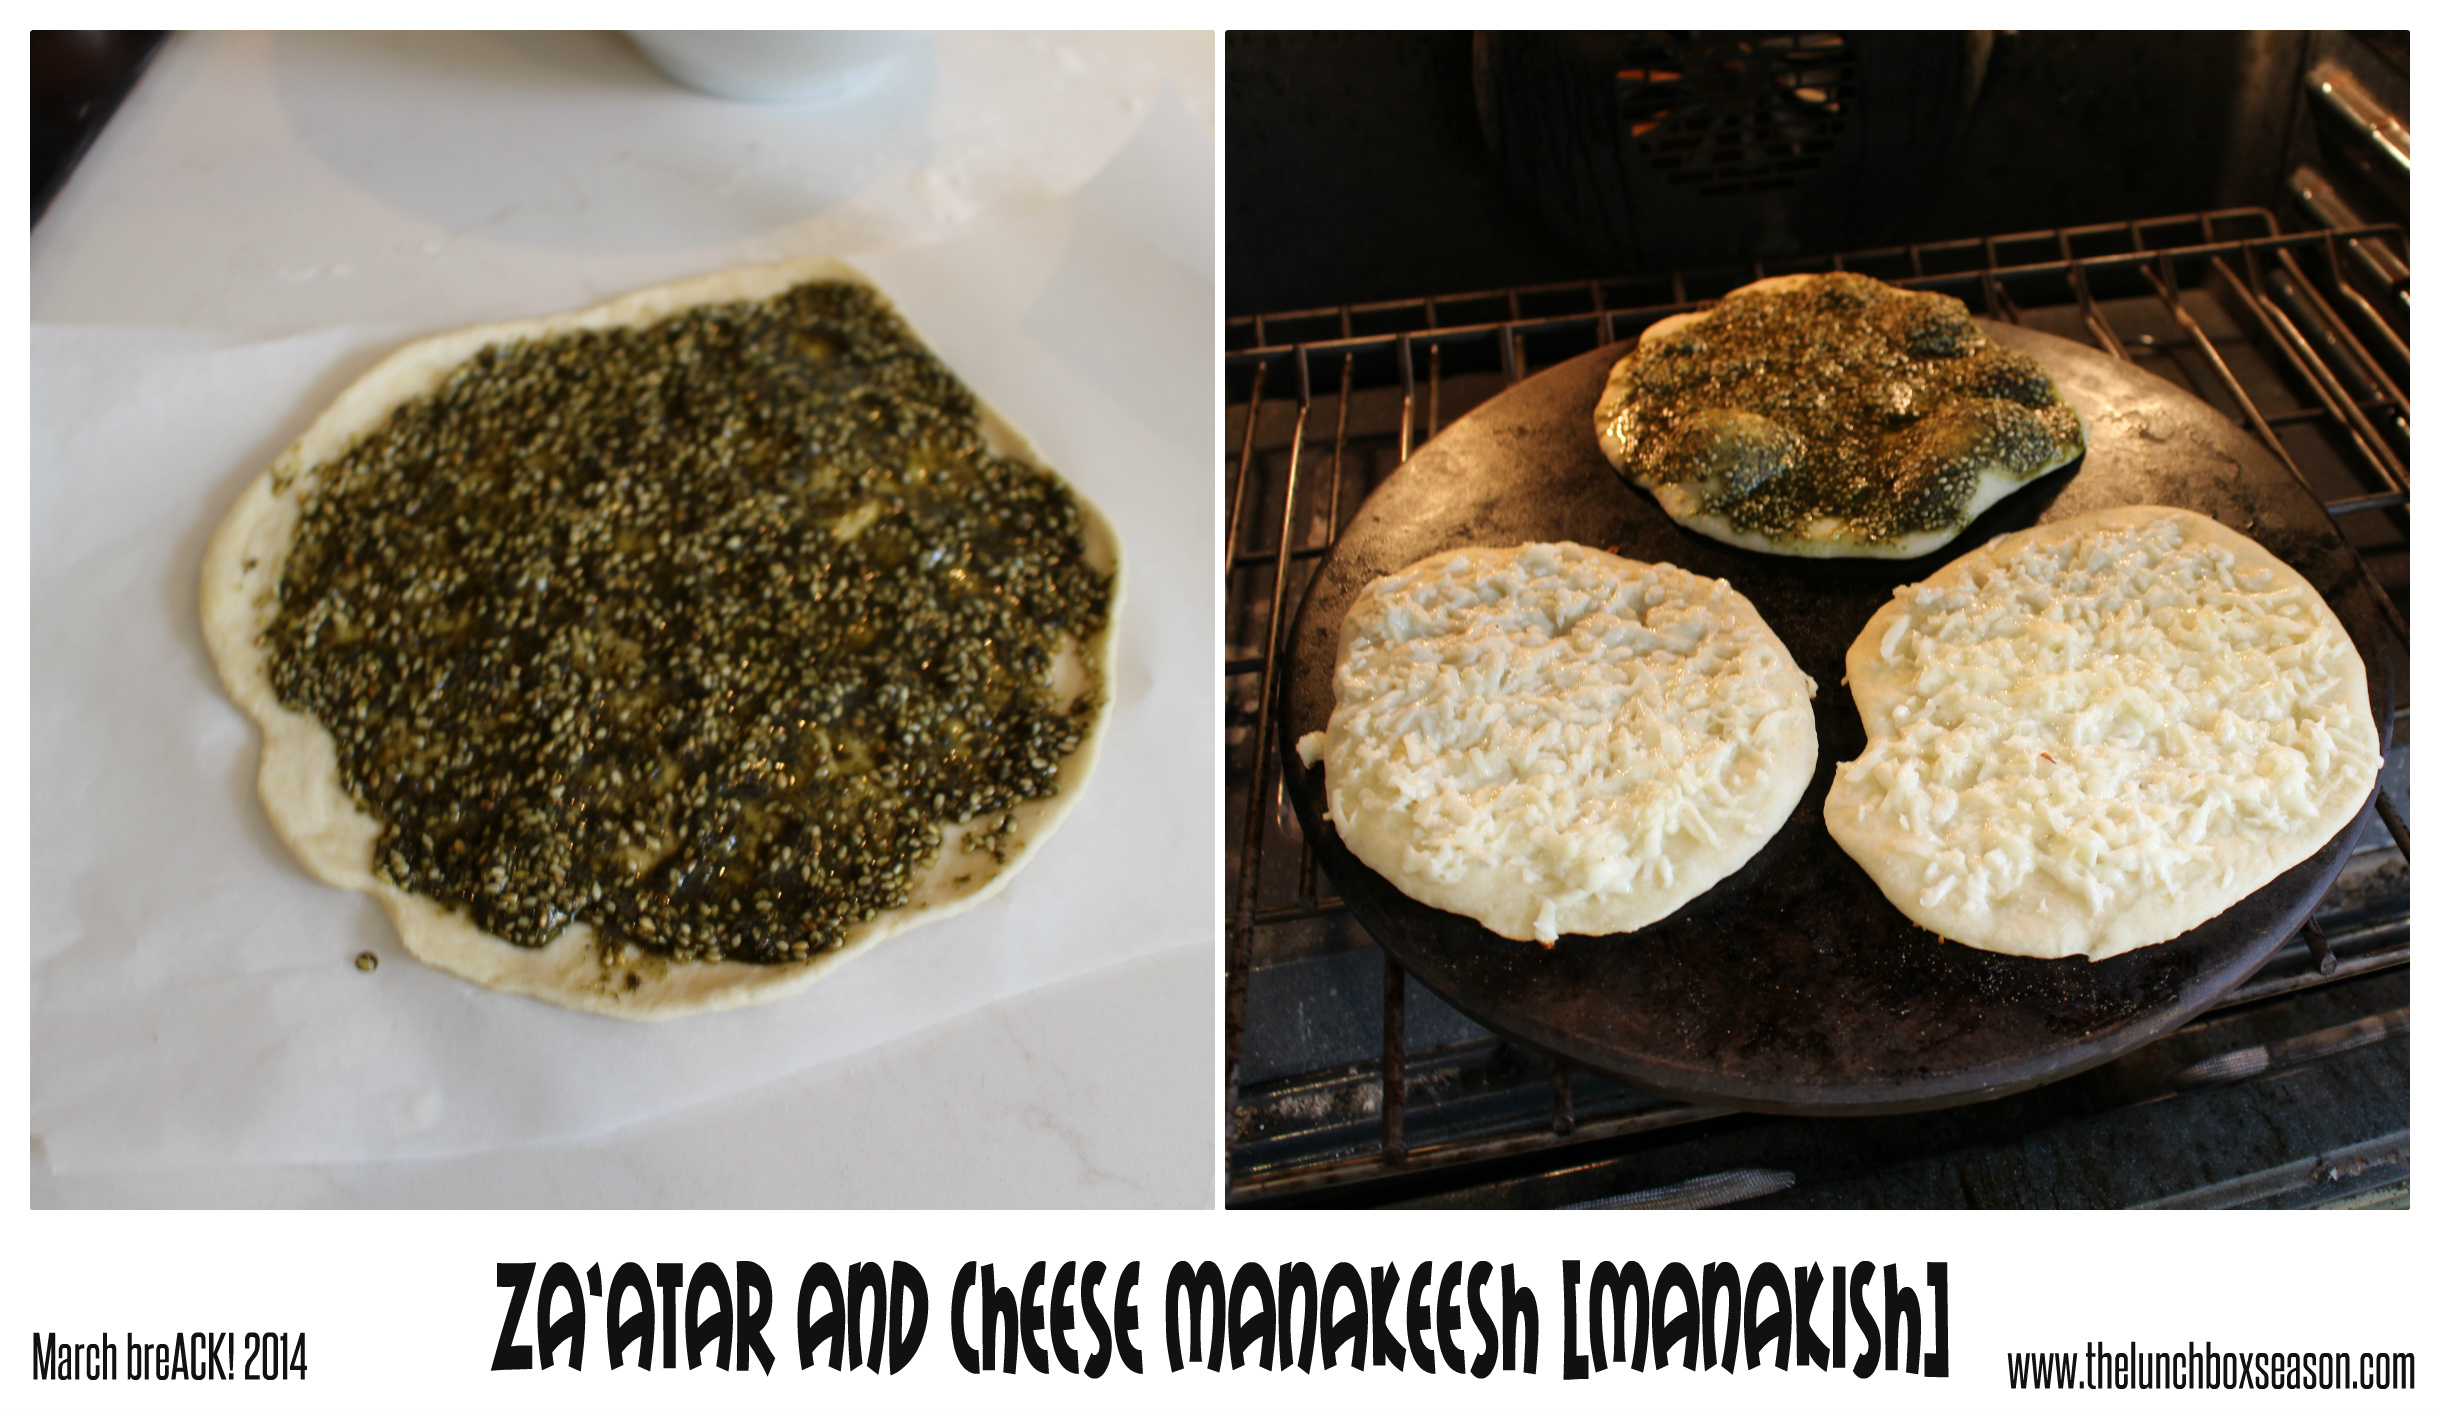 za'atar and cheese manakeesh [manakish]